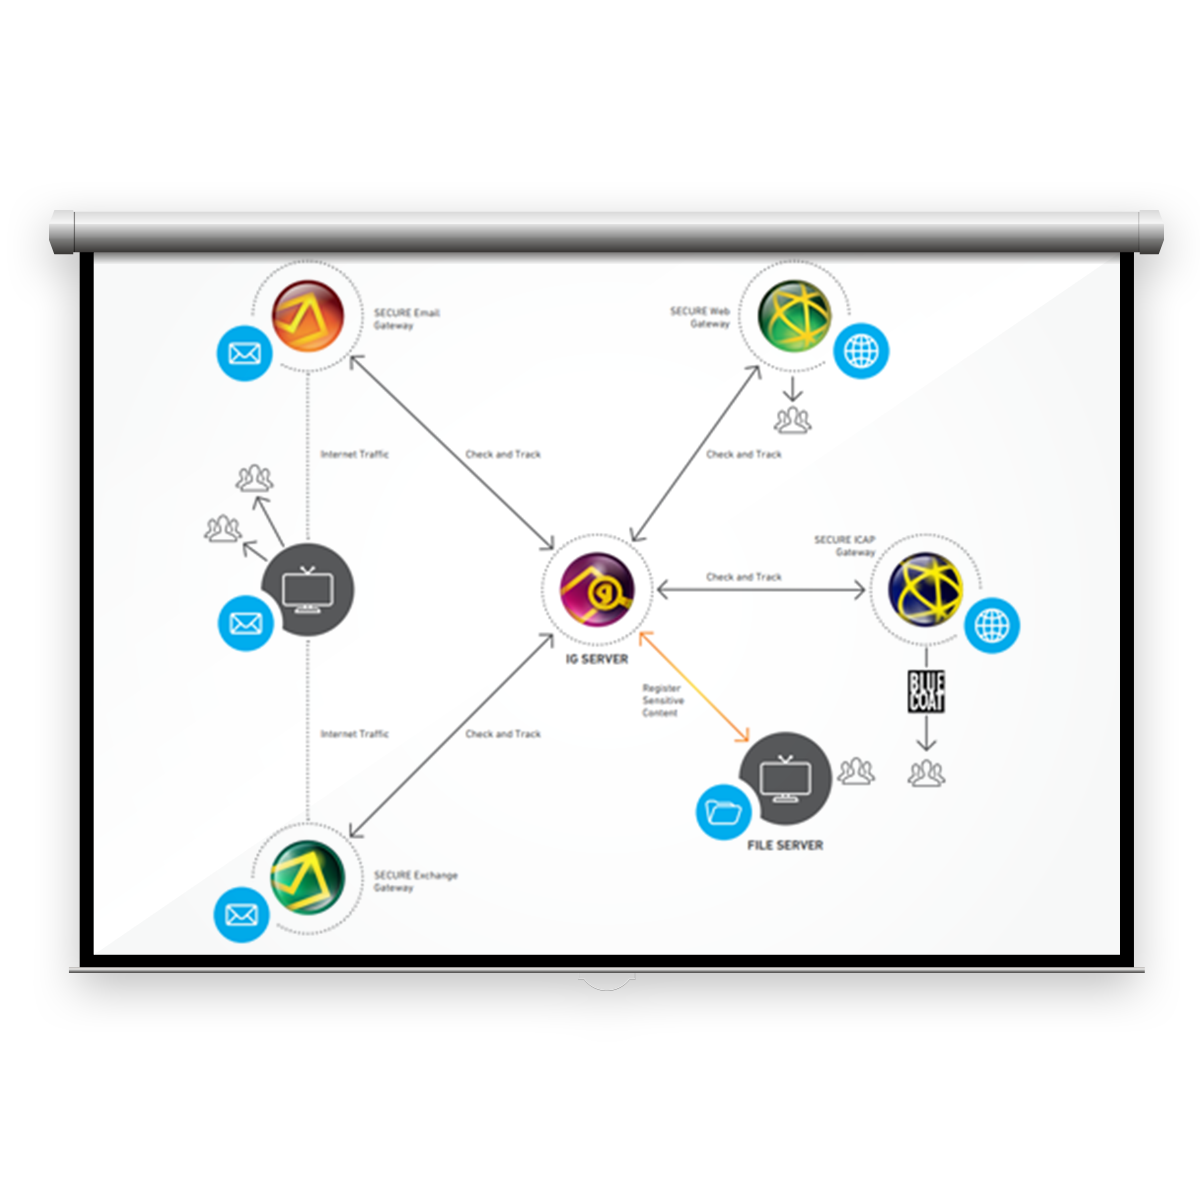 Clearswift Information Governance diagram